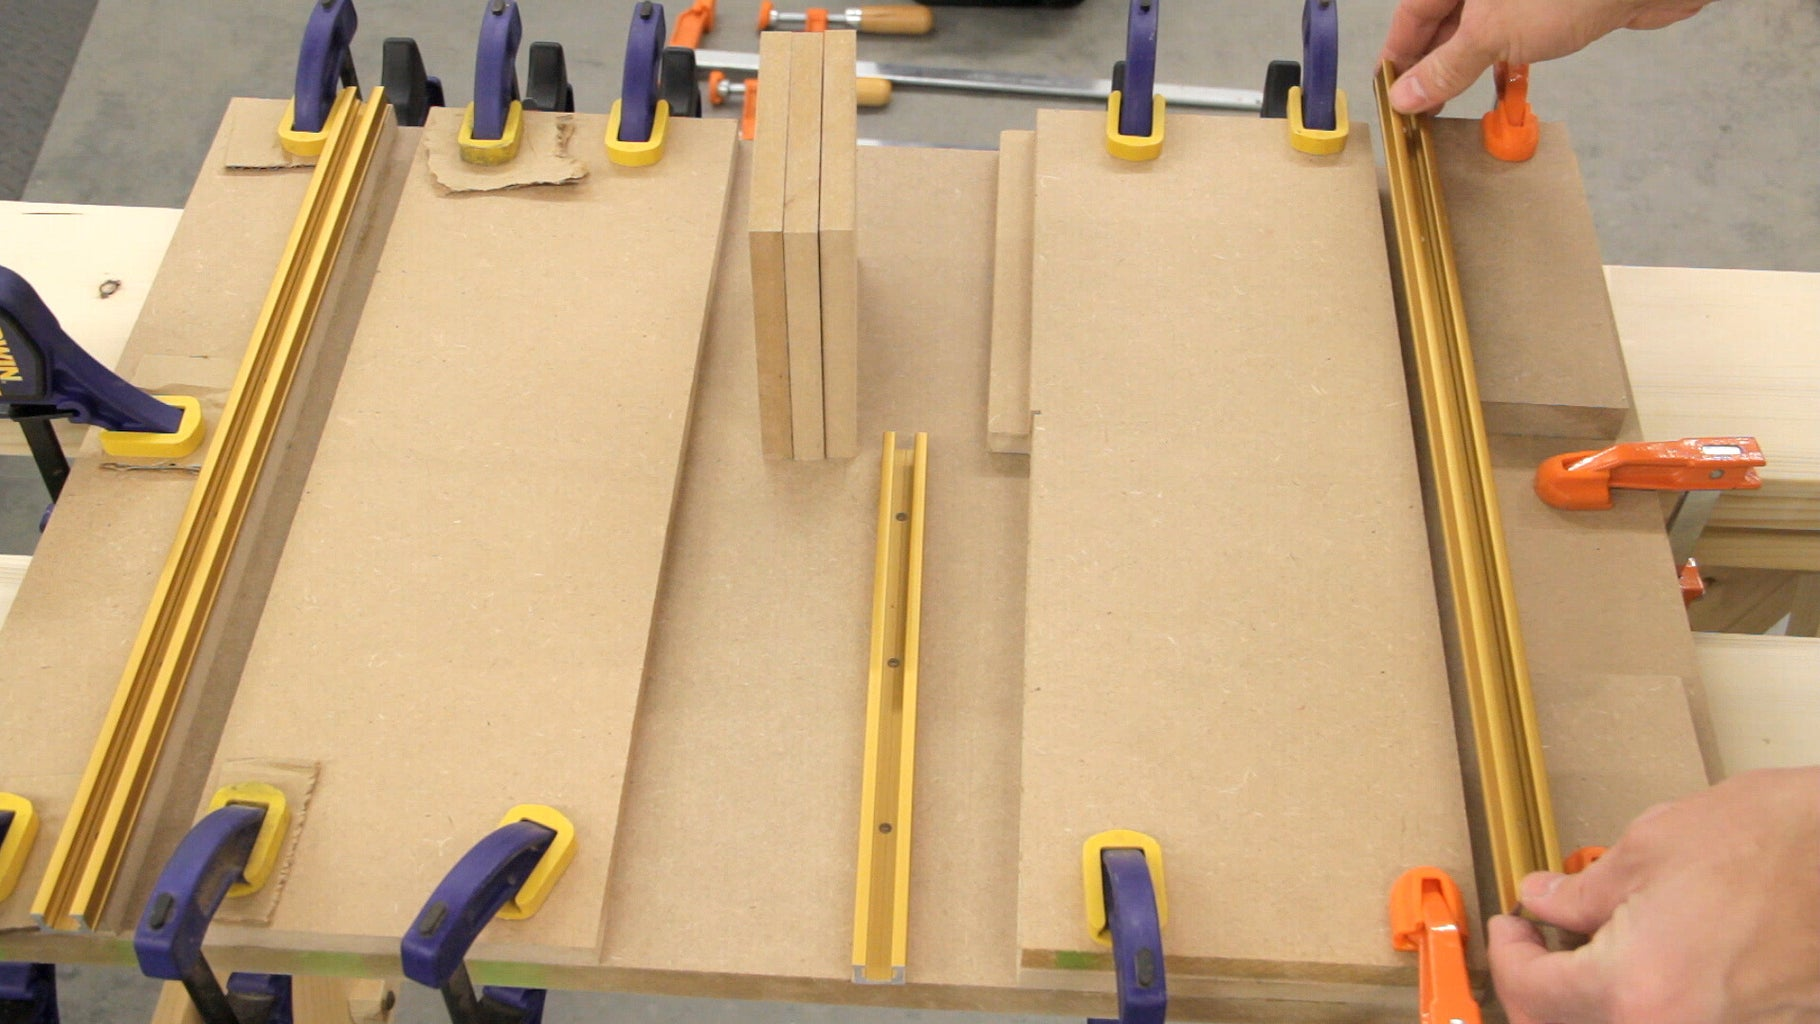 Gluing the Top Parts